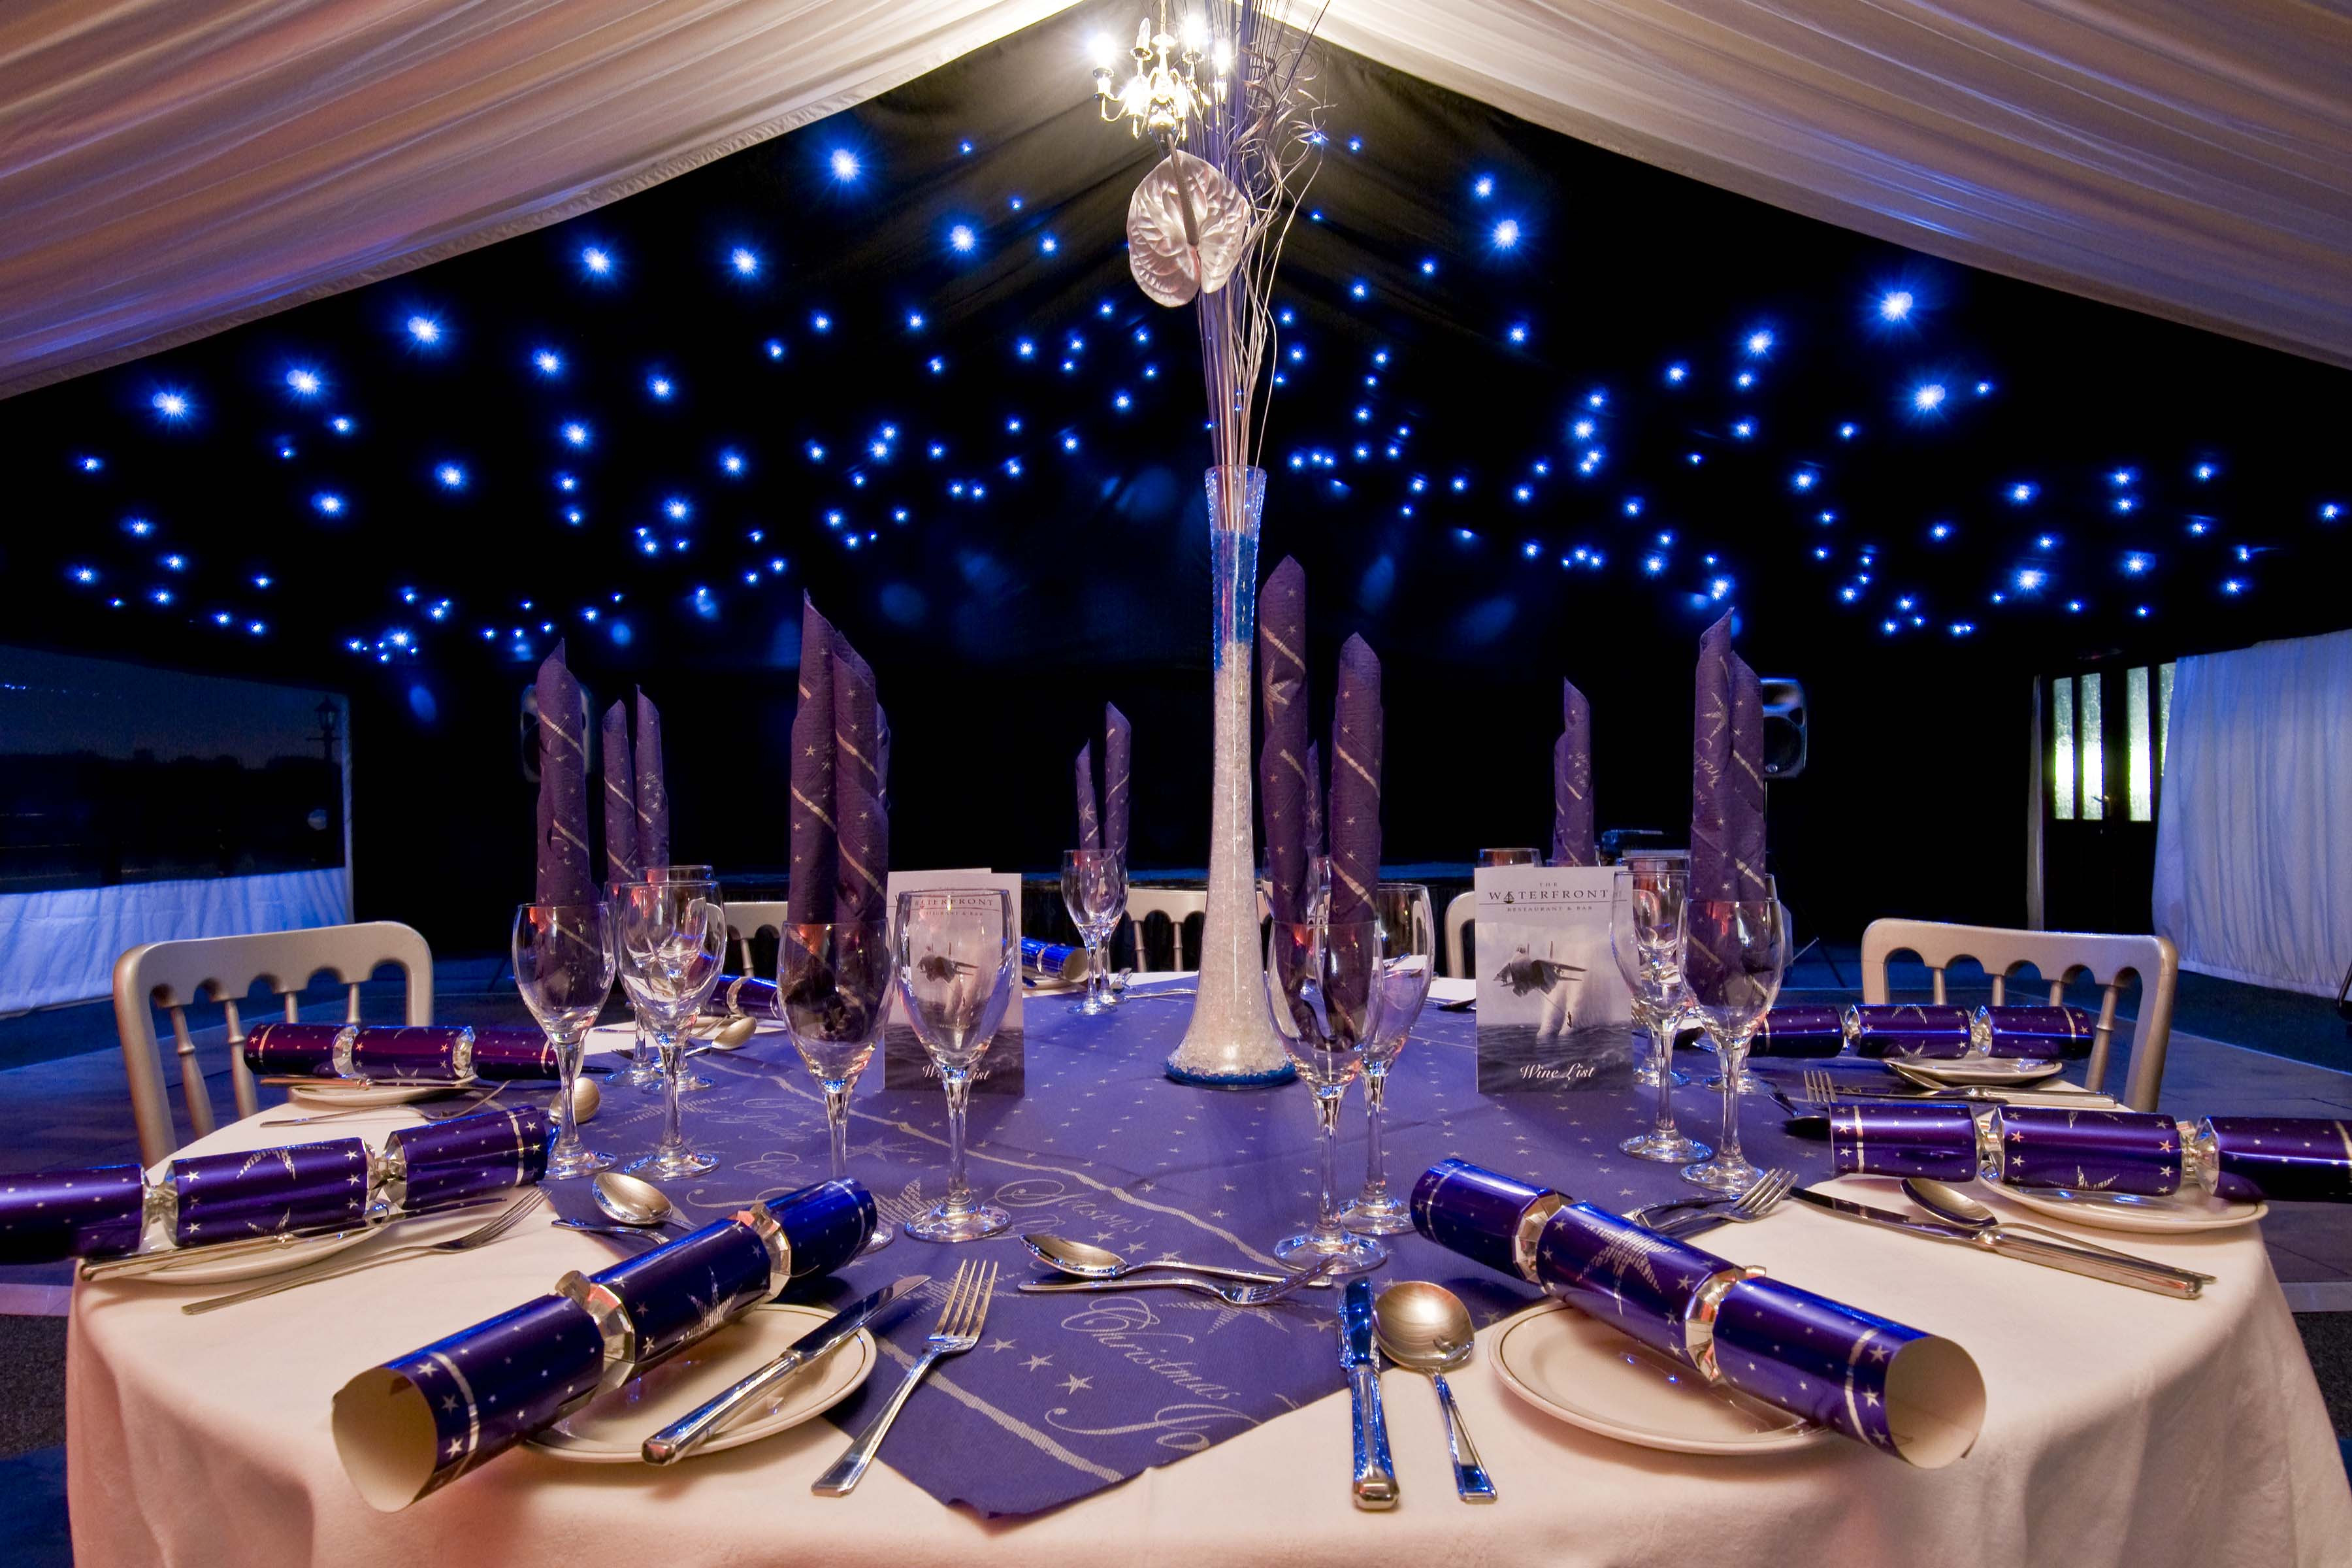 Company Christmas Party Ideas On A Budget  Themed Events – Timeless Treasures Co